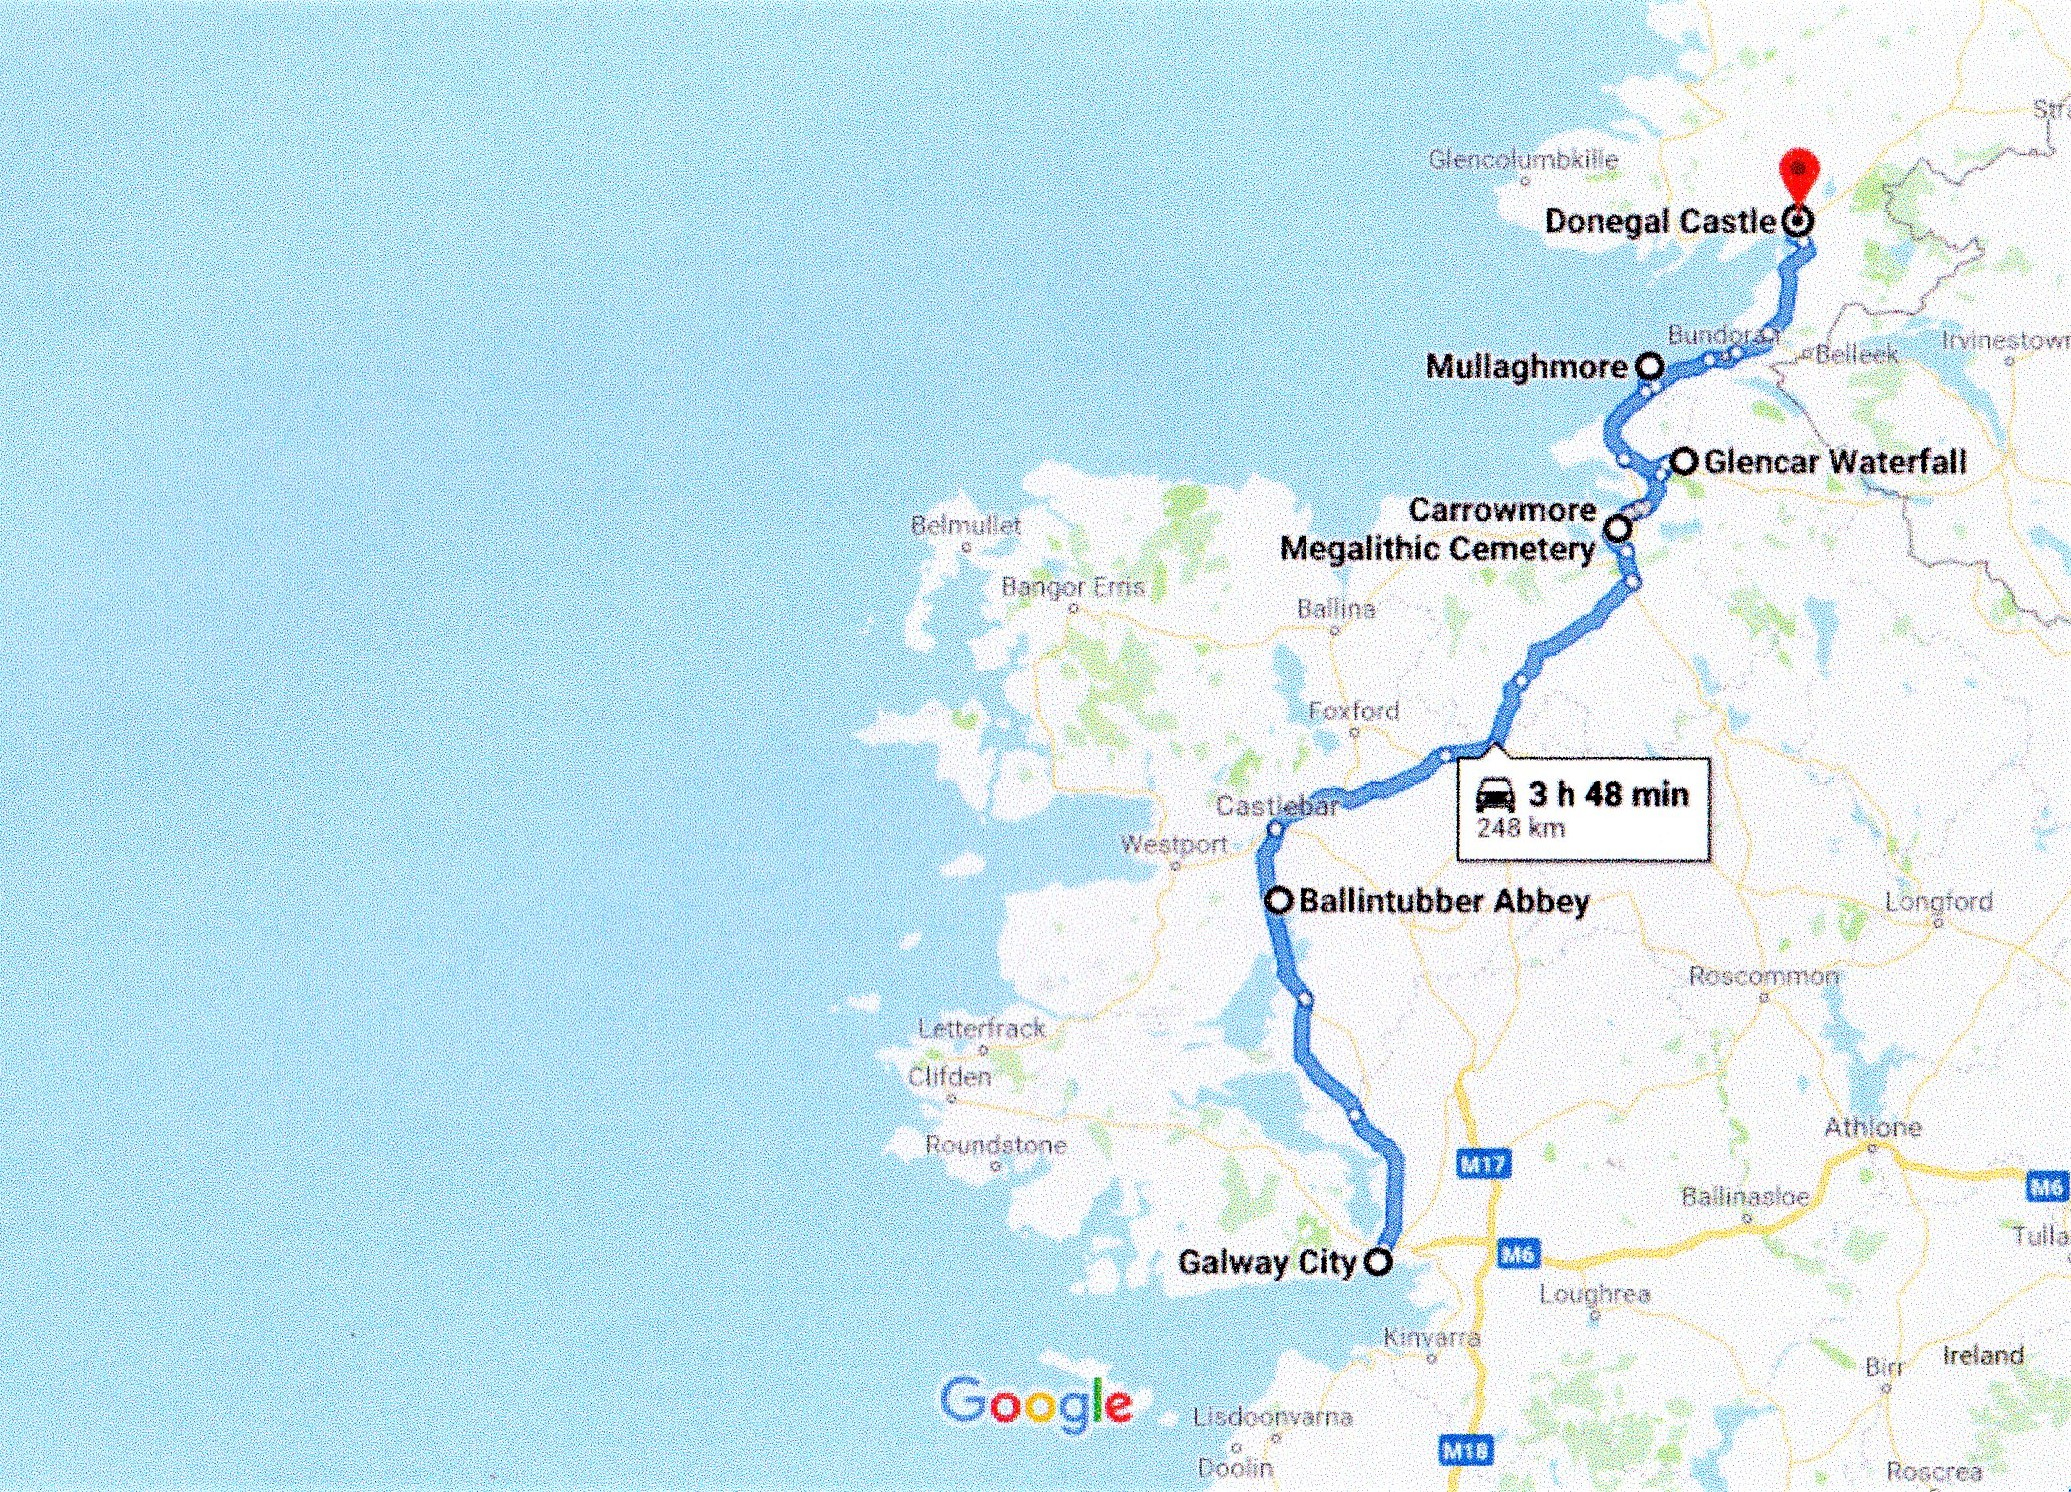 Google route map of galway to donegal